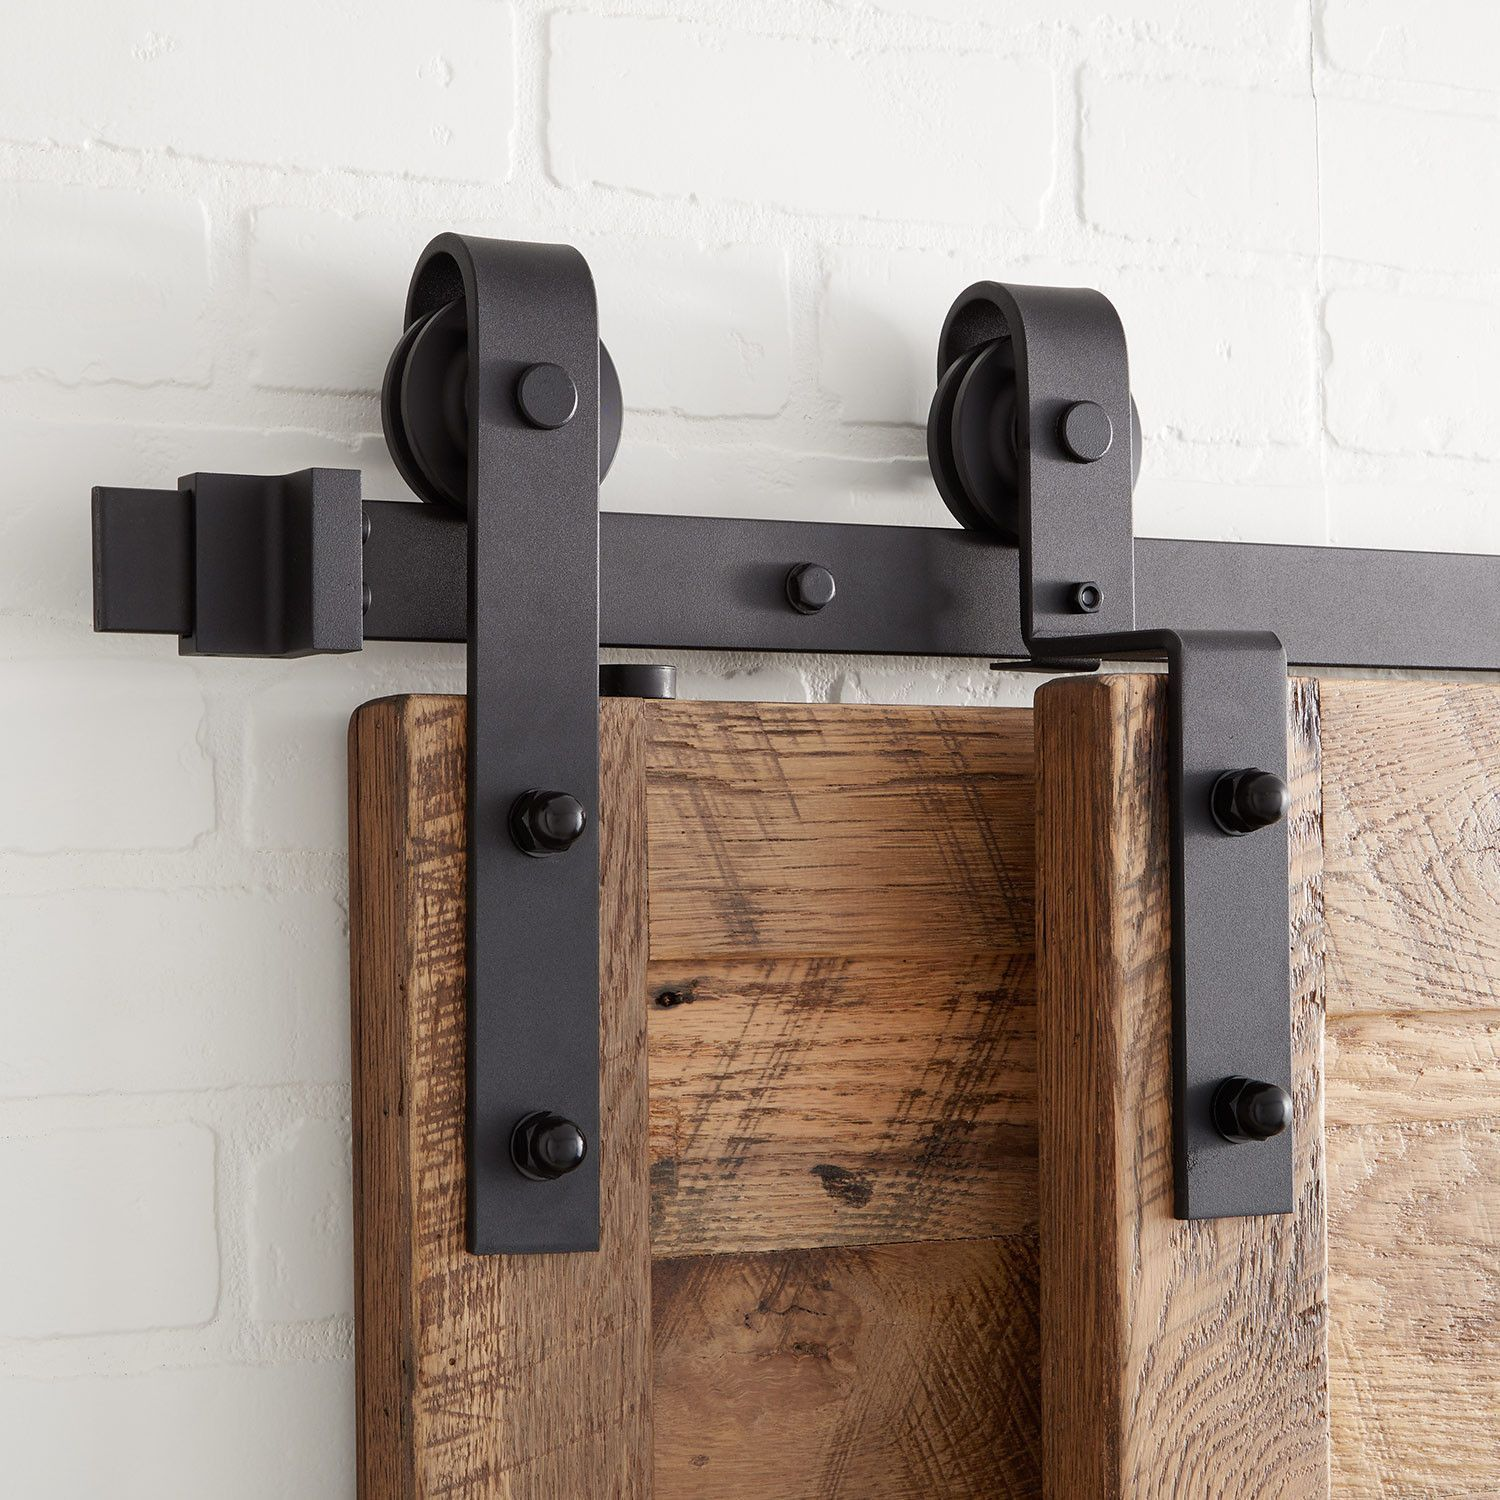 Barn Door Track And Rollers Double Hung Barn Door Hardware Barn Door Tracker For Sale Bypass Barn Door Bypass Barn Door Hardware Interior Barn Doors